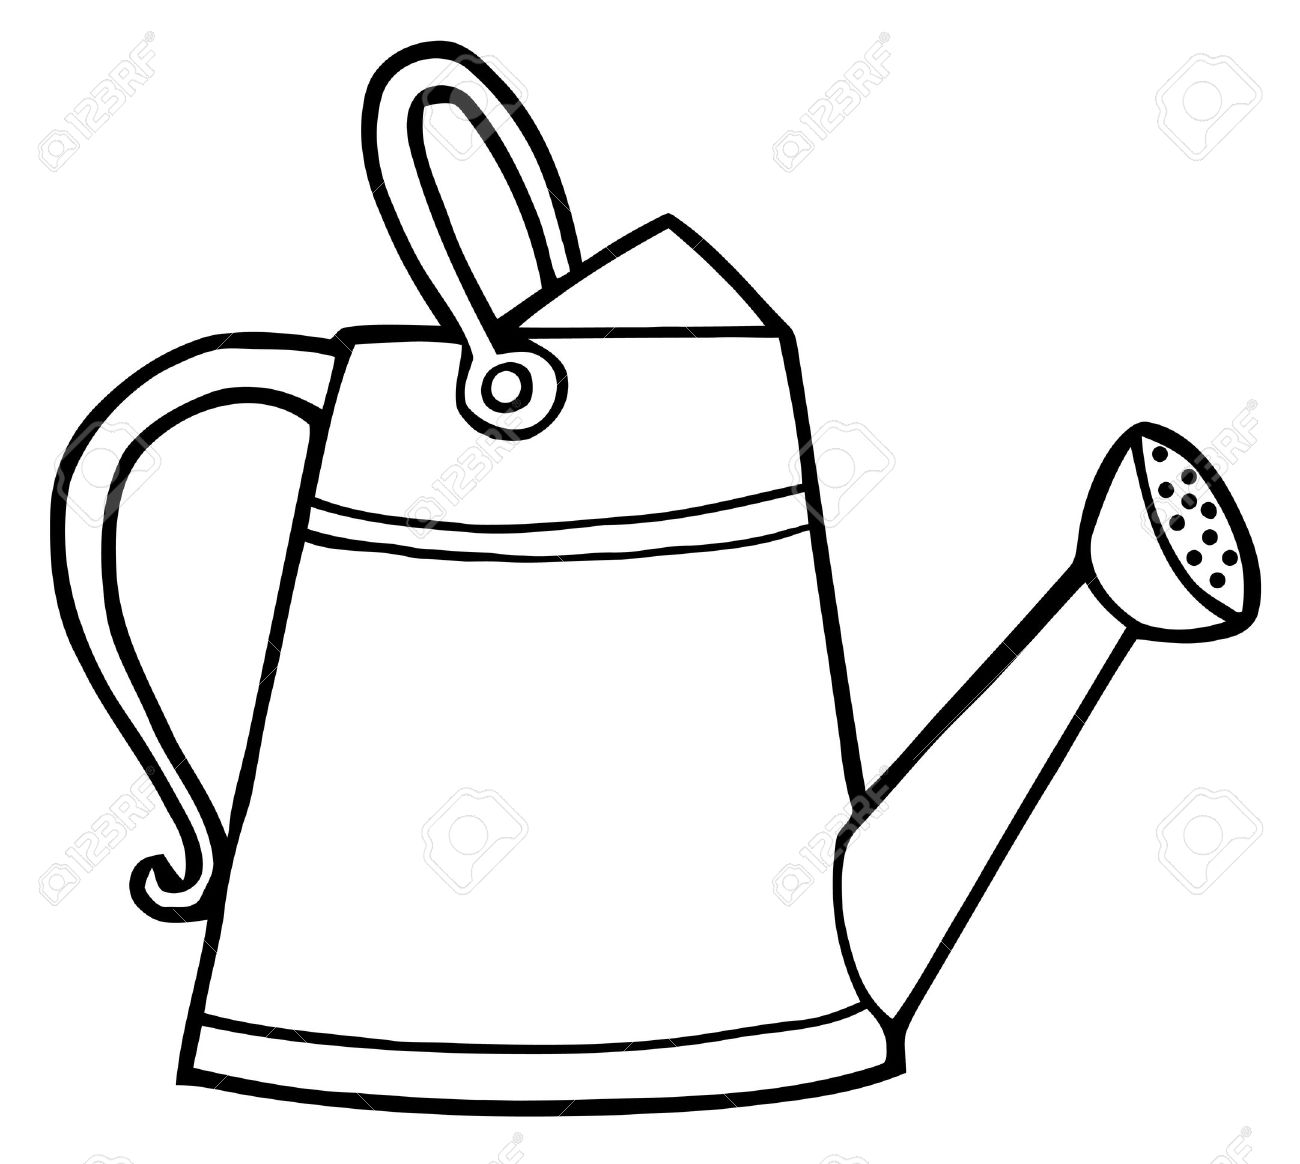 Watering gems clipart clip black and white library Garden clipart watering can - 93 transparent clip arts ... clip black and white library